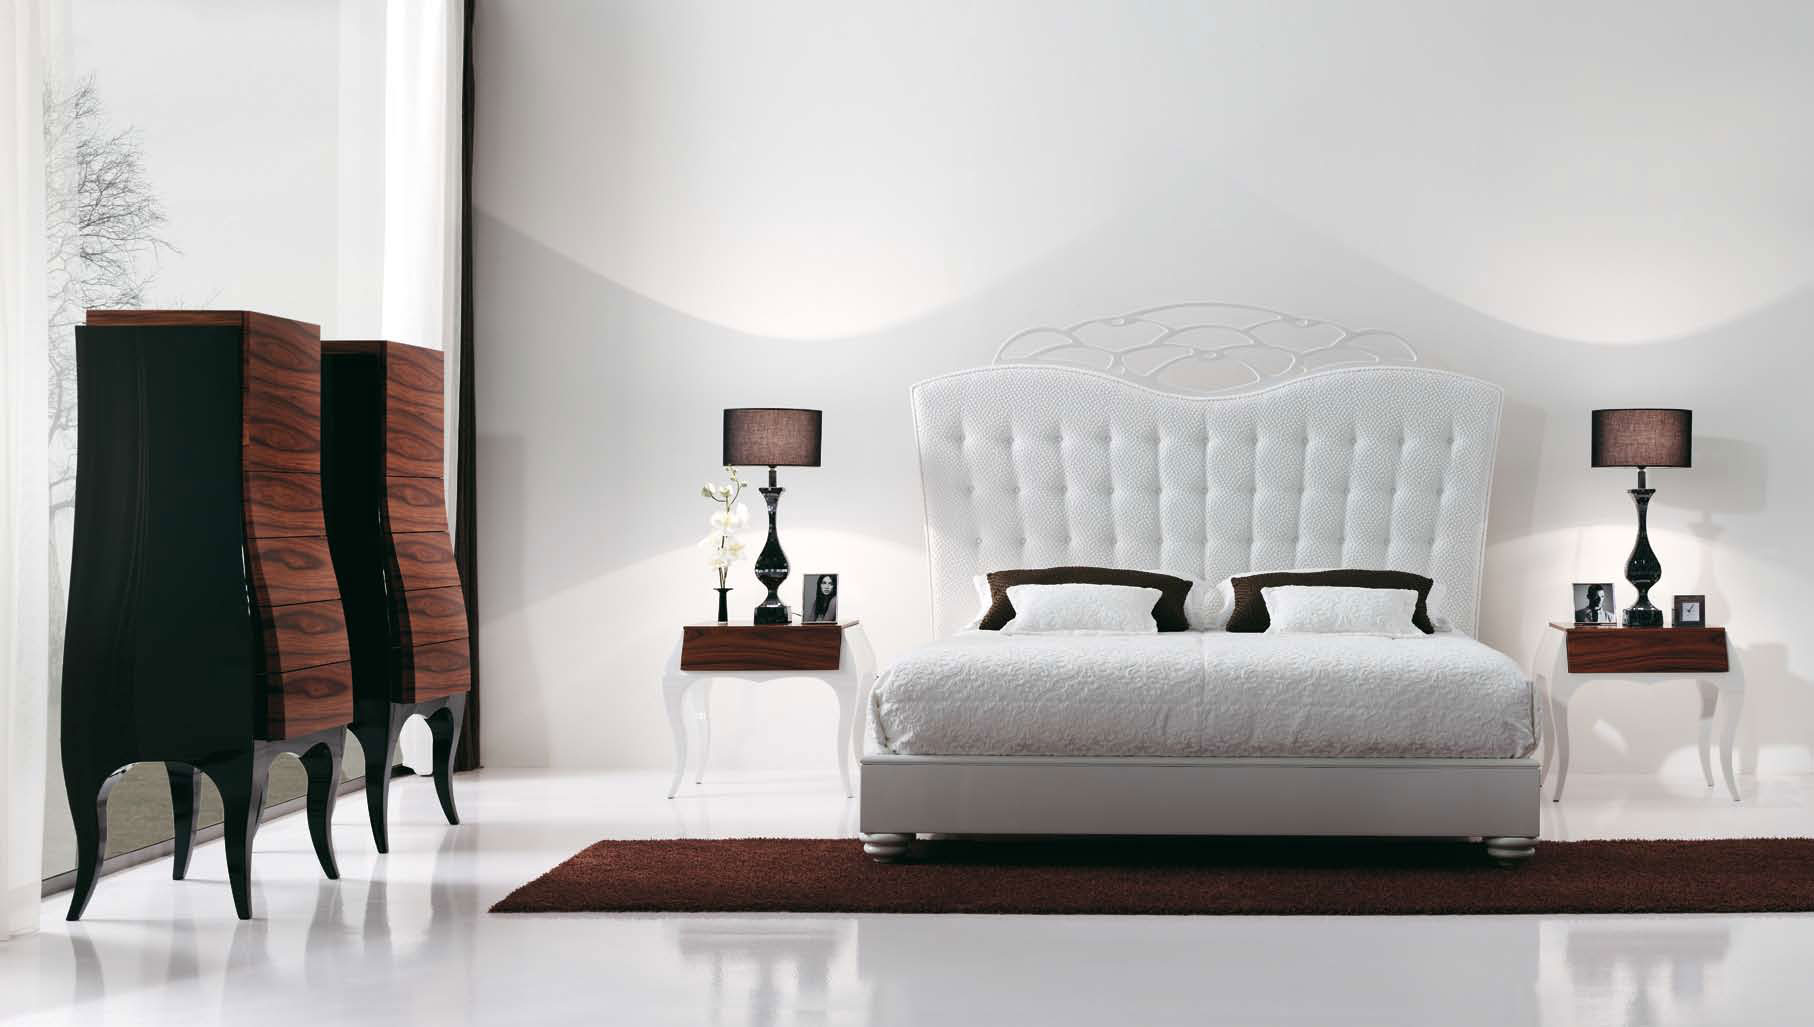 Remarkable White Bedroom 1814 x 1027 · 118 kB · jpeg